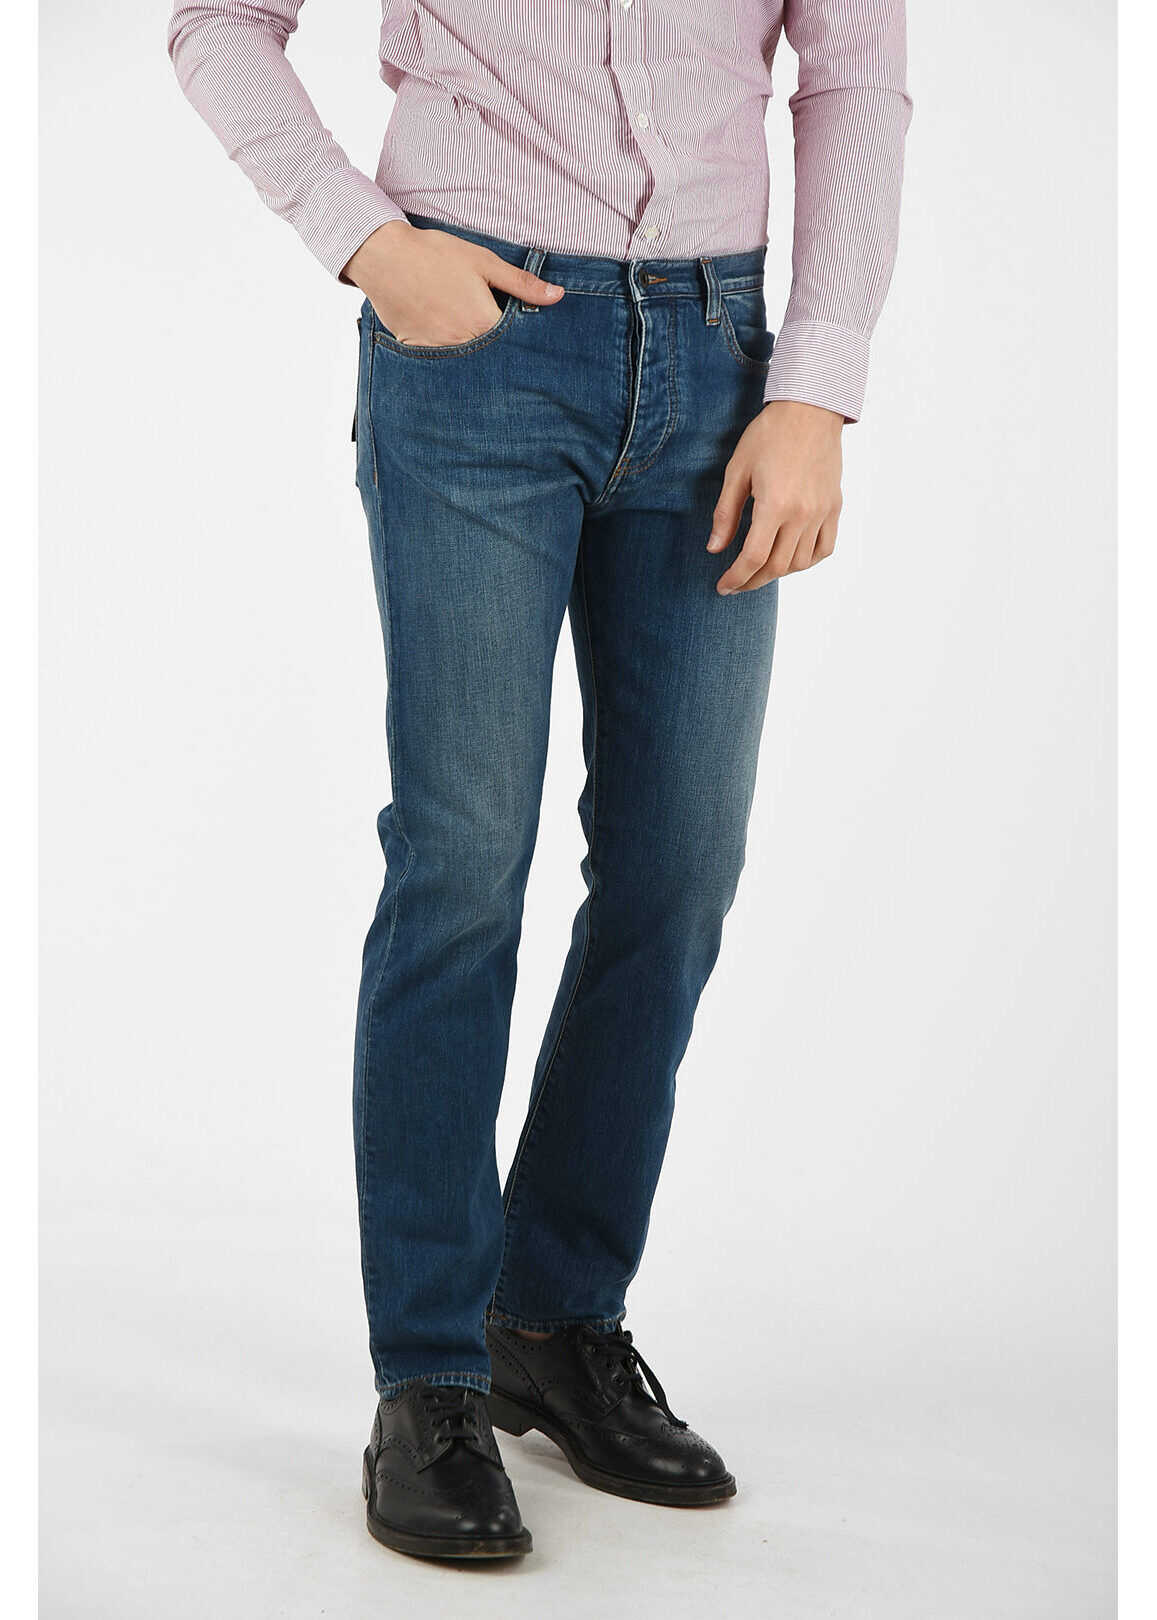 Armani ARMANI JEANS 20cm Stretch Denim Jeans BLUE